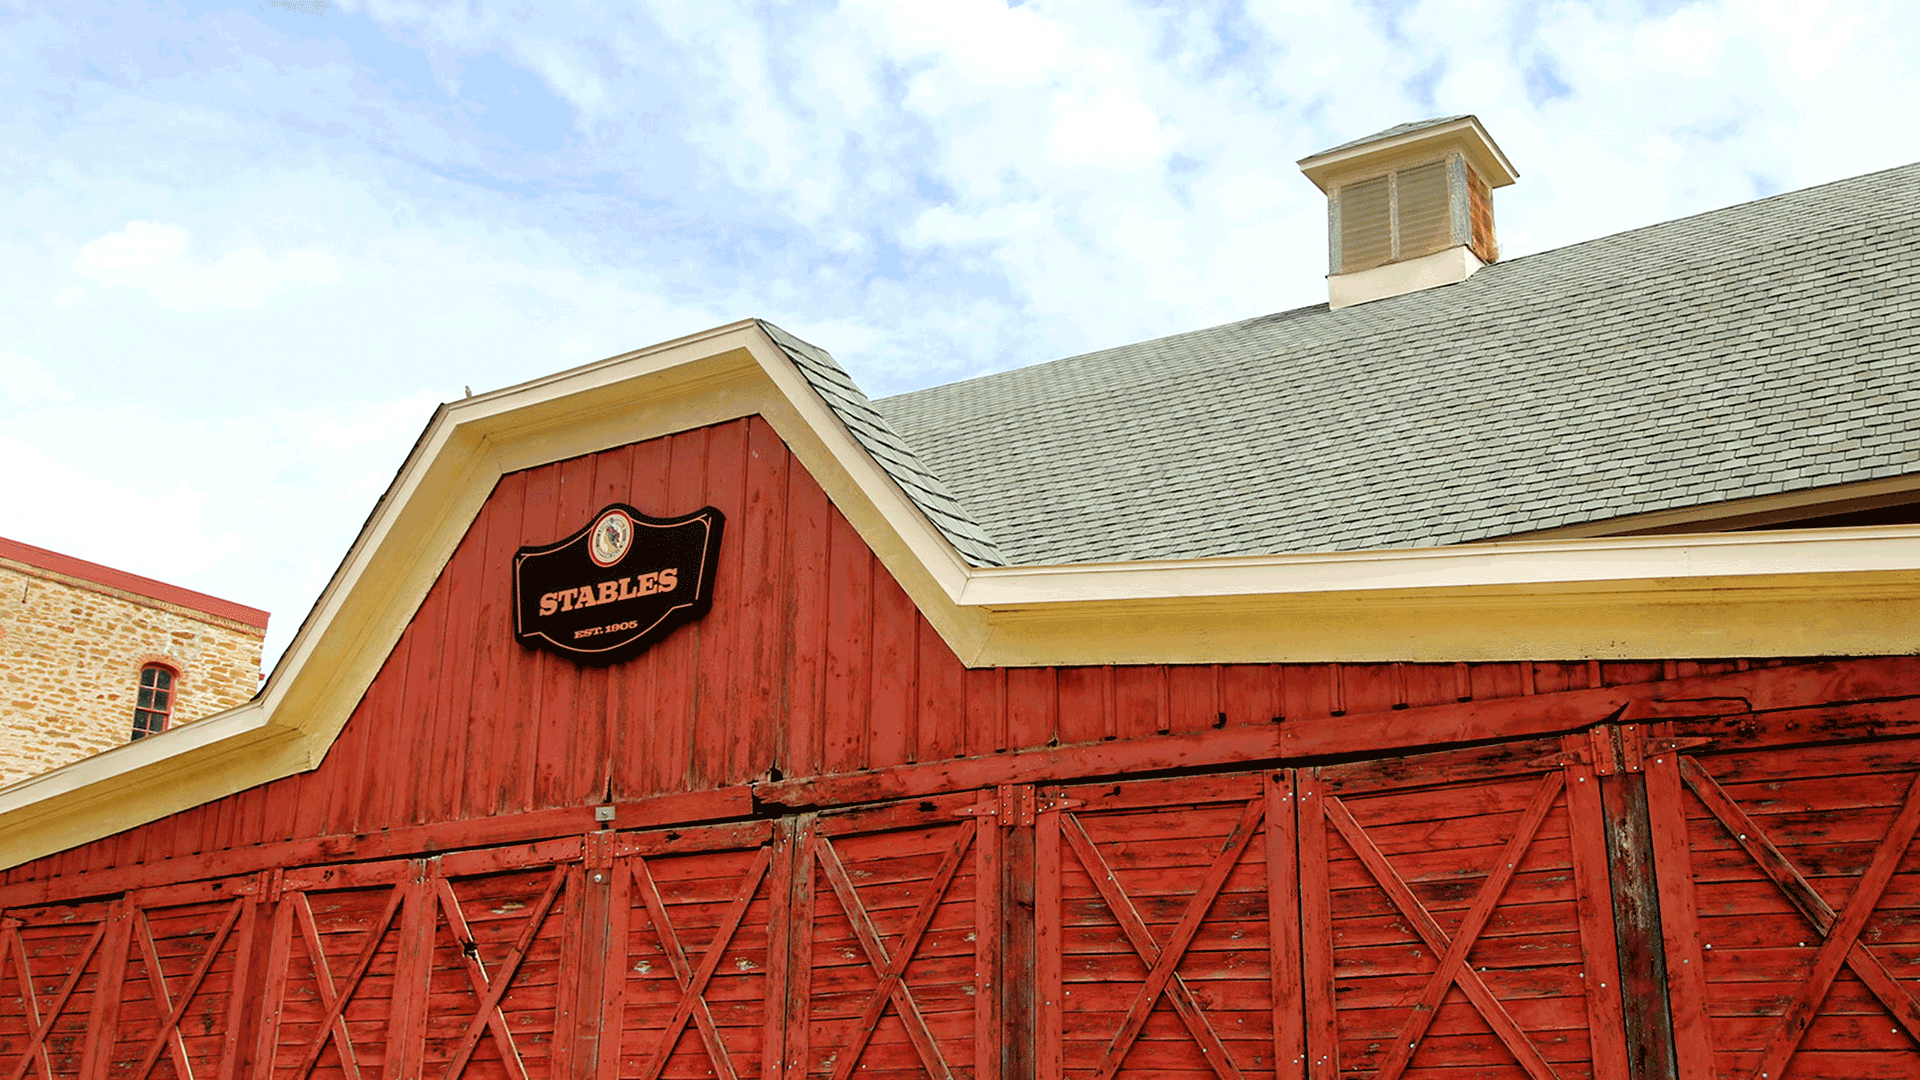 Stables exterior sign